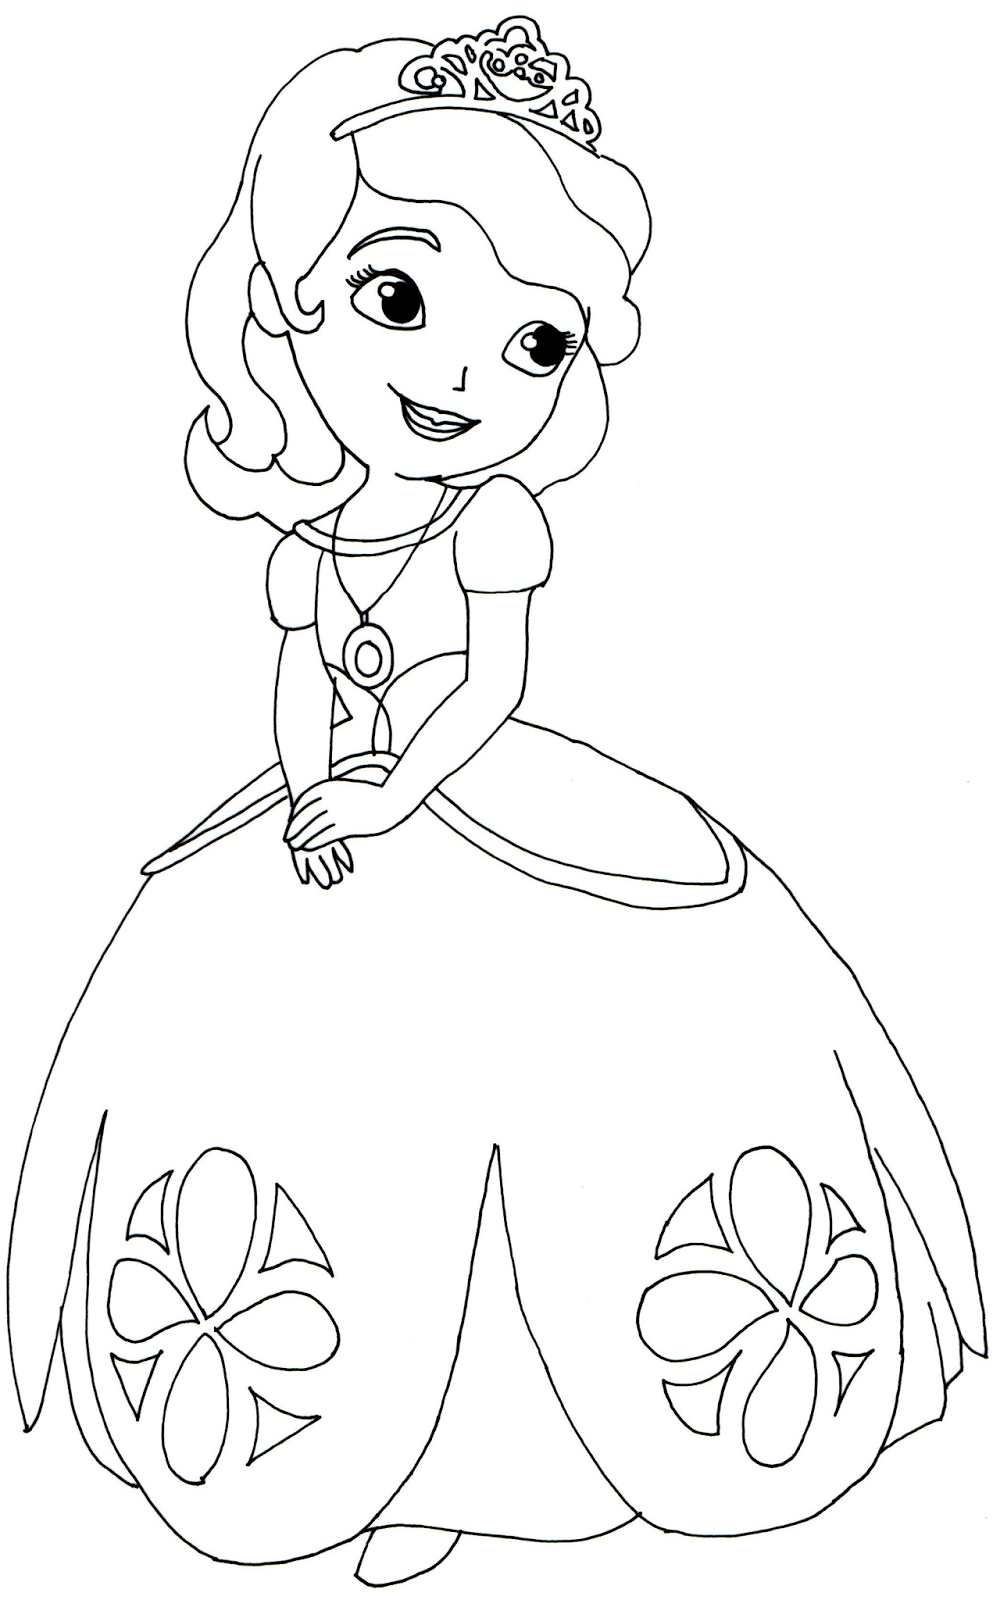 Sofia First Coloring Pages Cartoon Wallpapers | трафареты ...